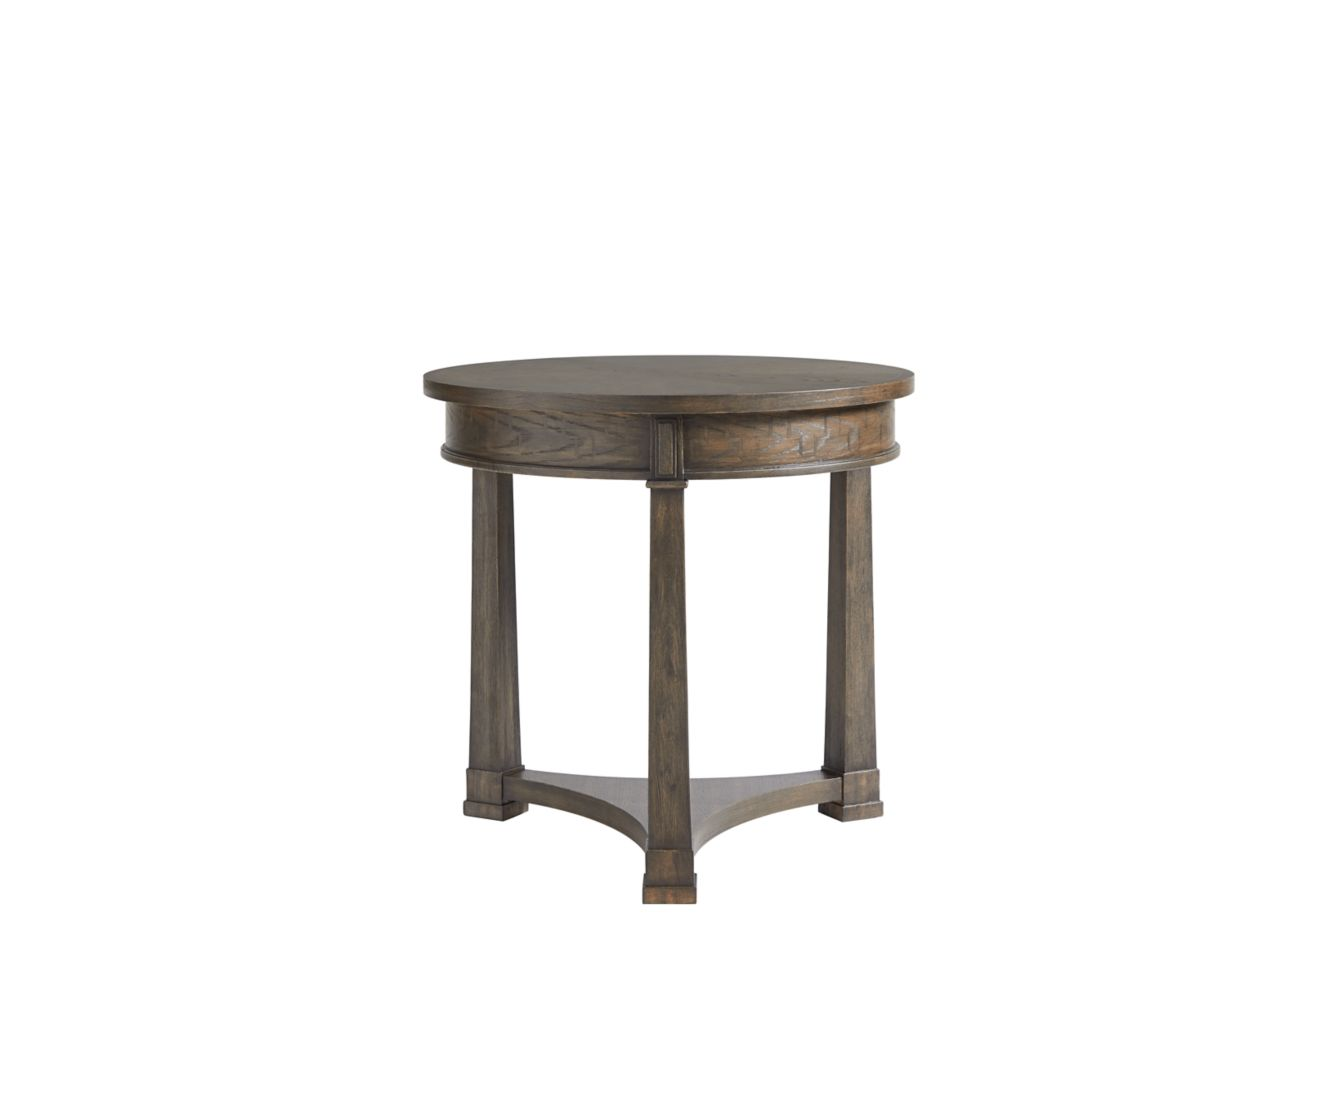 wethersfield estate lamp table granite celebrate home silo accent farmhouse stanley furniture living room end wood urban simple metal legs dinette coffee with and raw desk combo